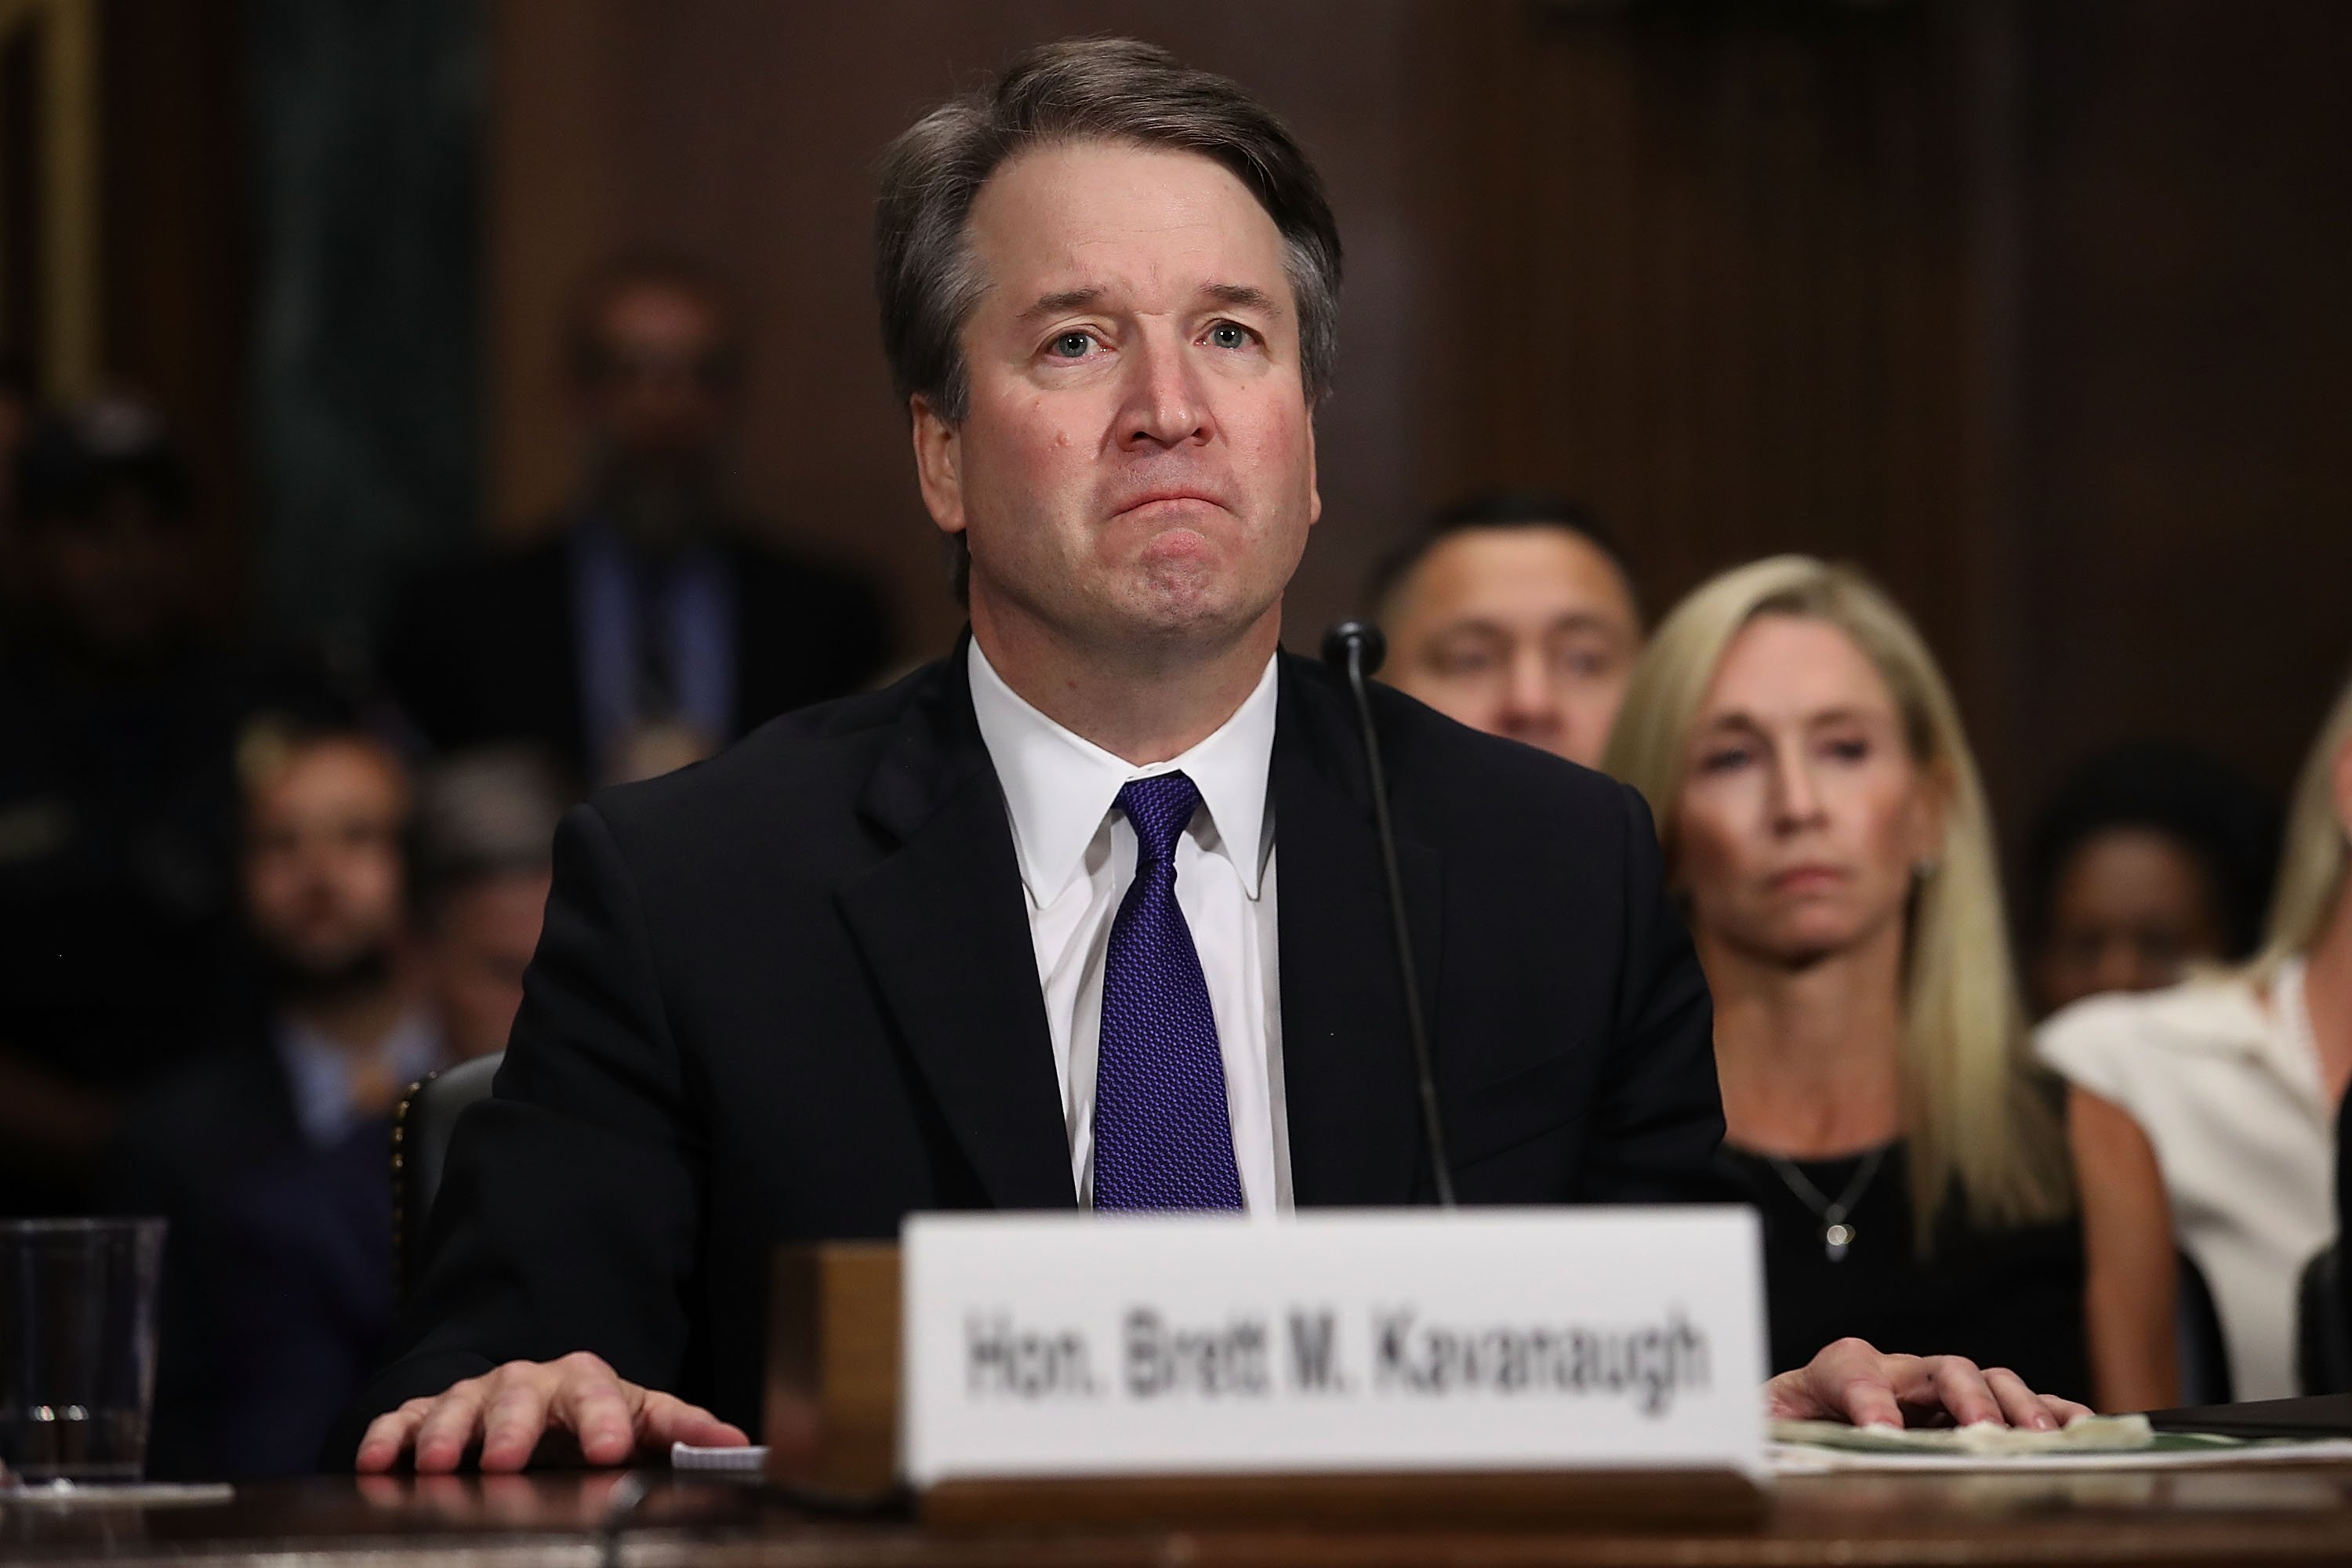 Brett Kavanaugh testifies to the Senate Judiciary Committee during his confirmation hearing on Capitol Hill September 27, 2018. (Win McNamee/Getty Images)